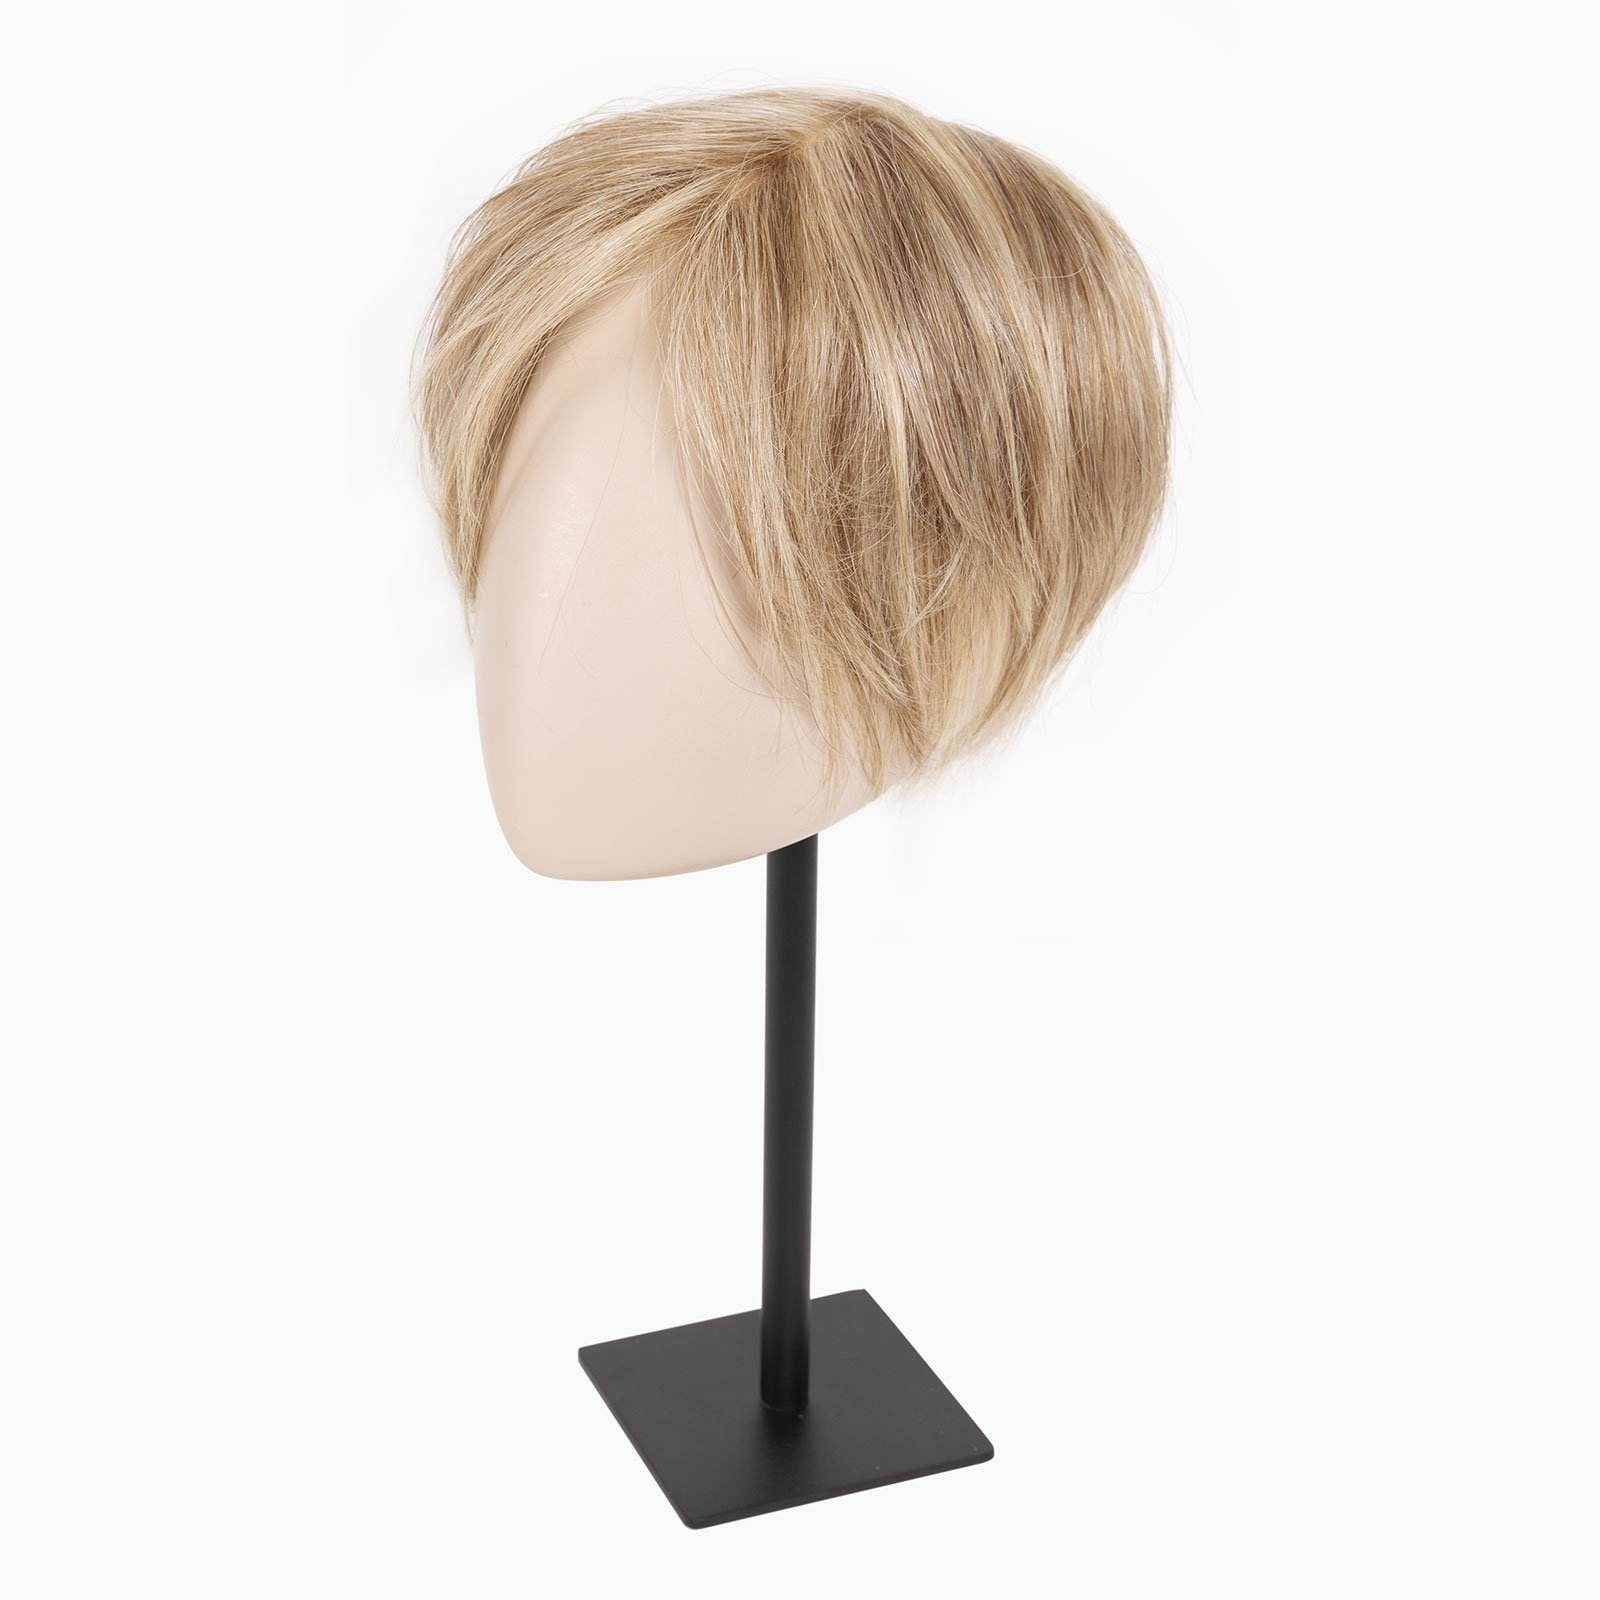 Blonde hair topper on display stand